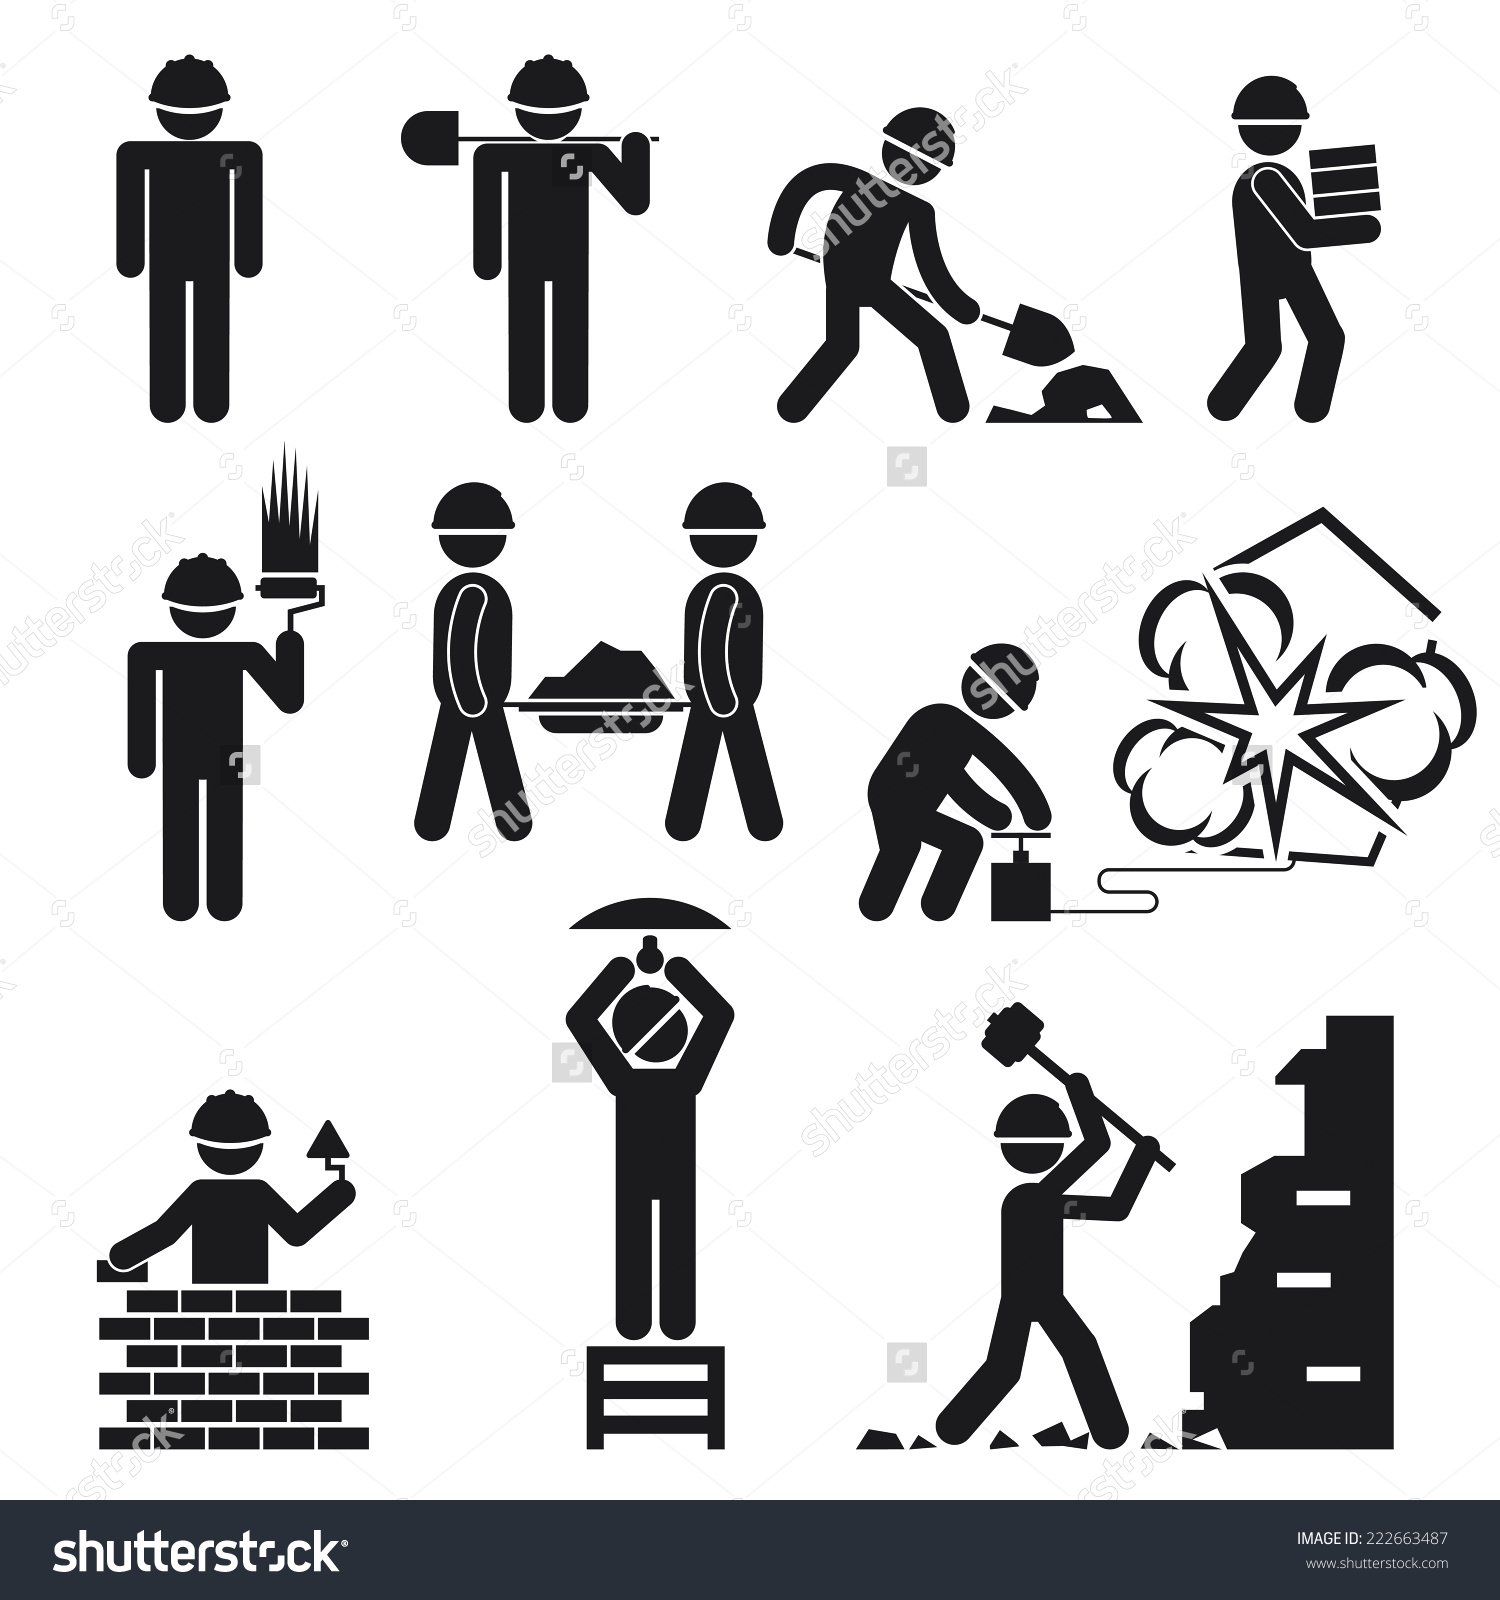 Vector Construction Demolition Buildings Pictogram Icons Stock.